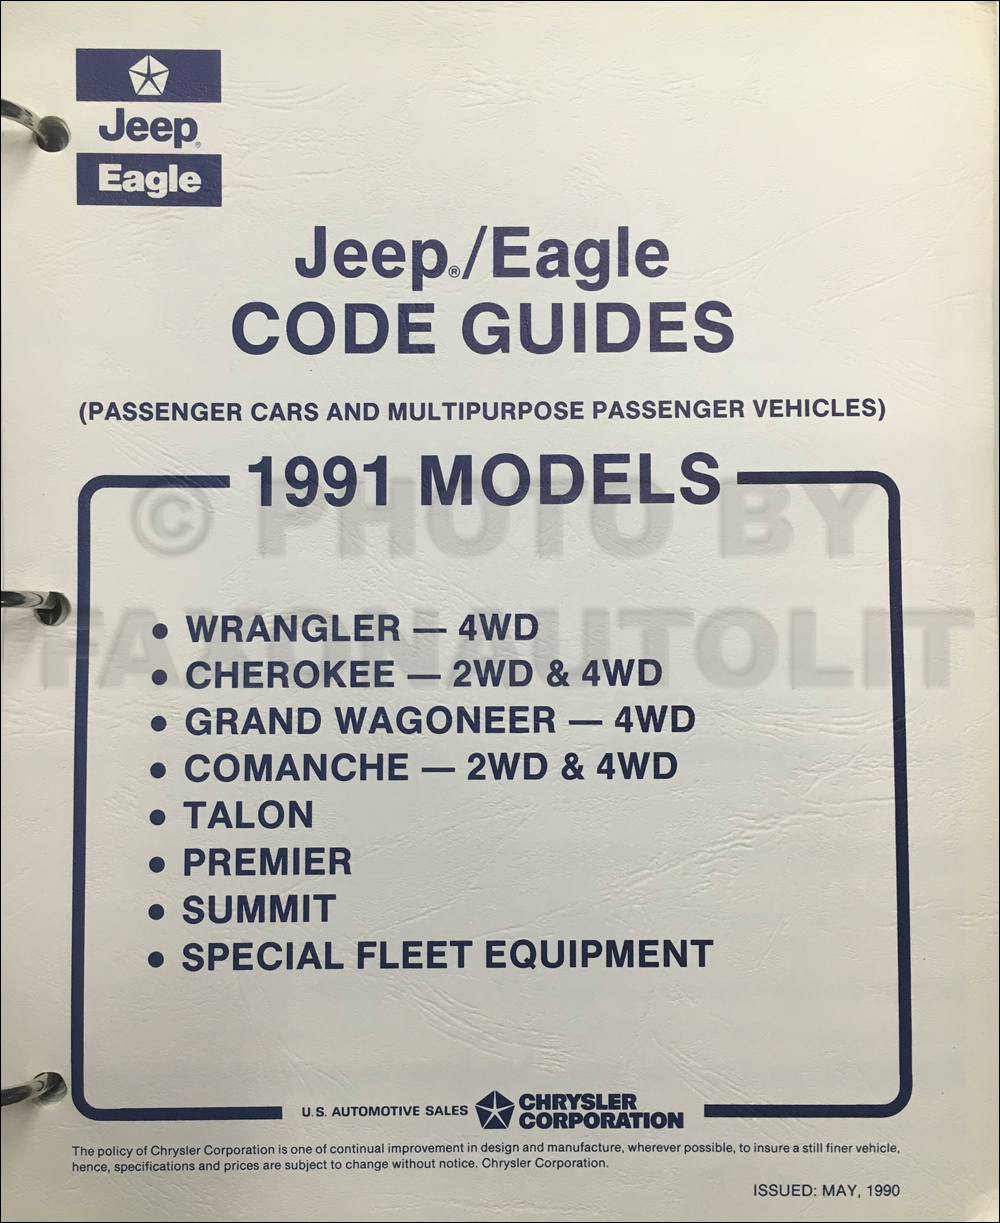 1991 Jeep and Eagle Code Guide Original